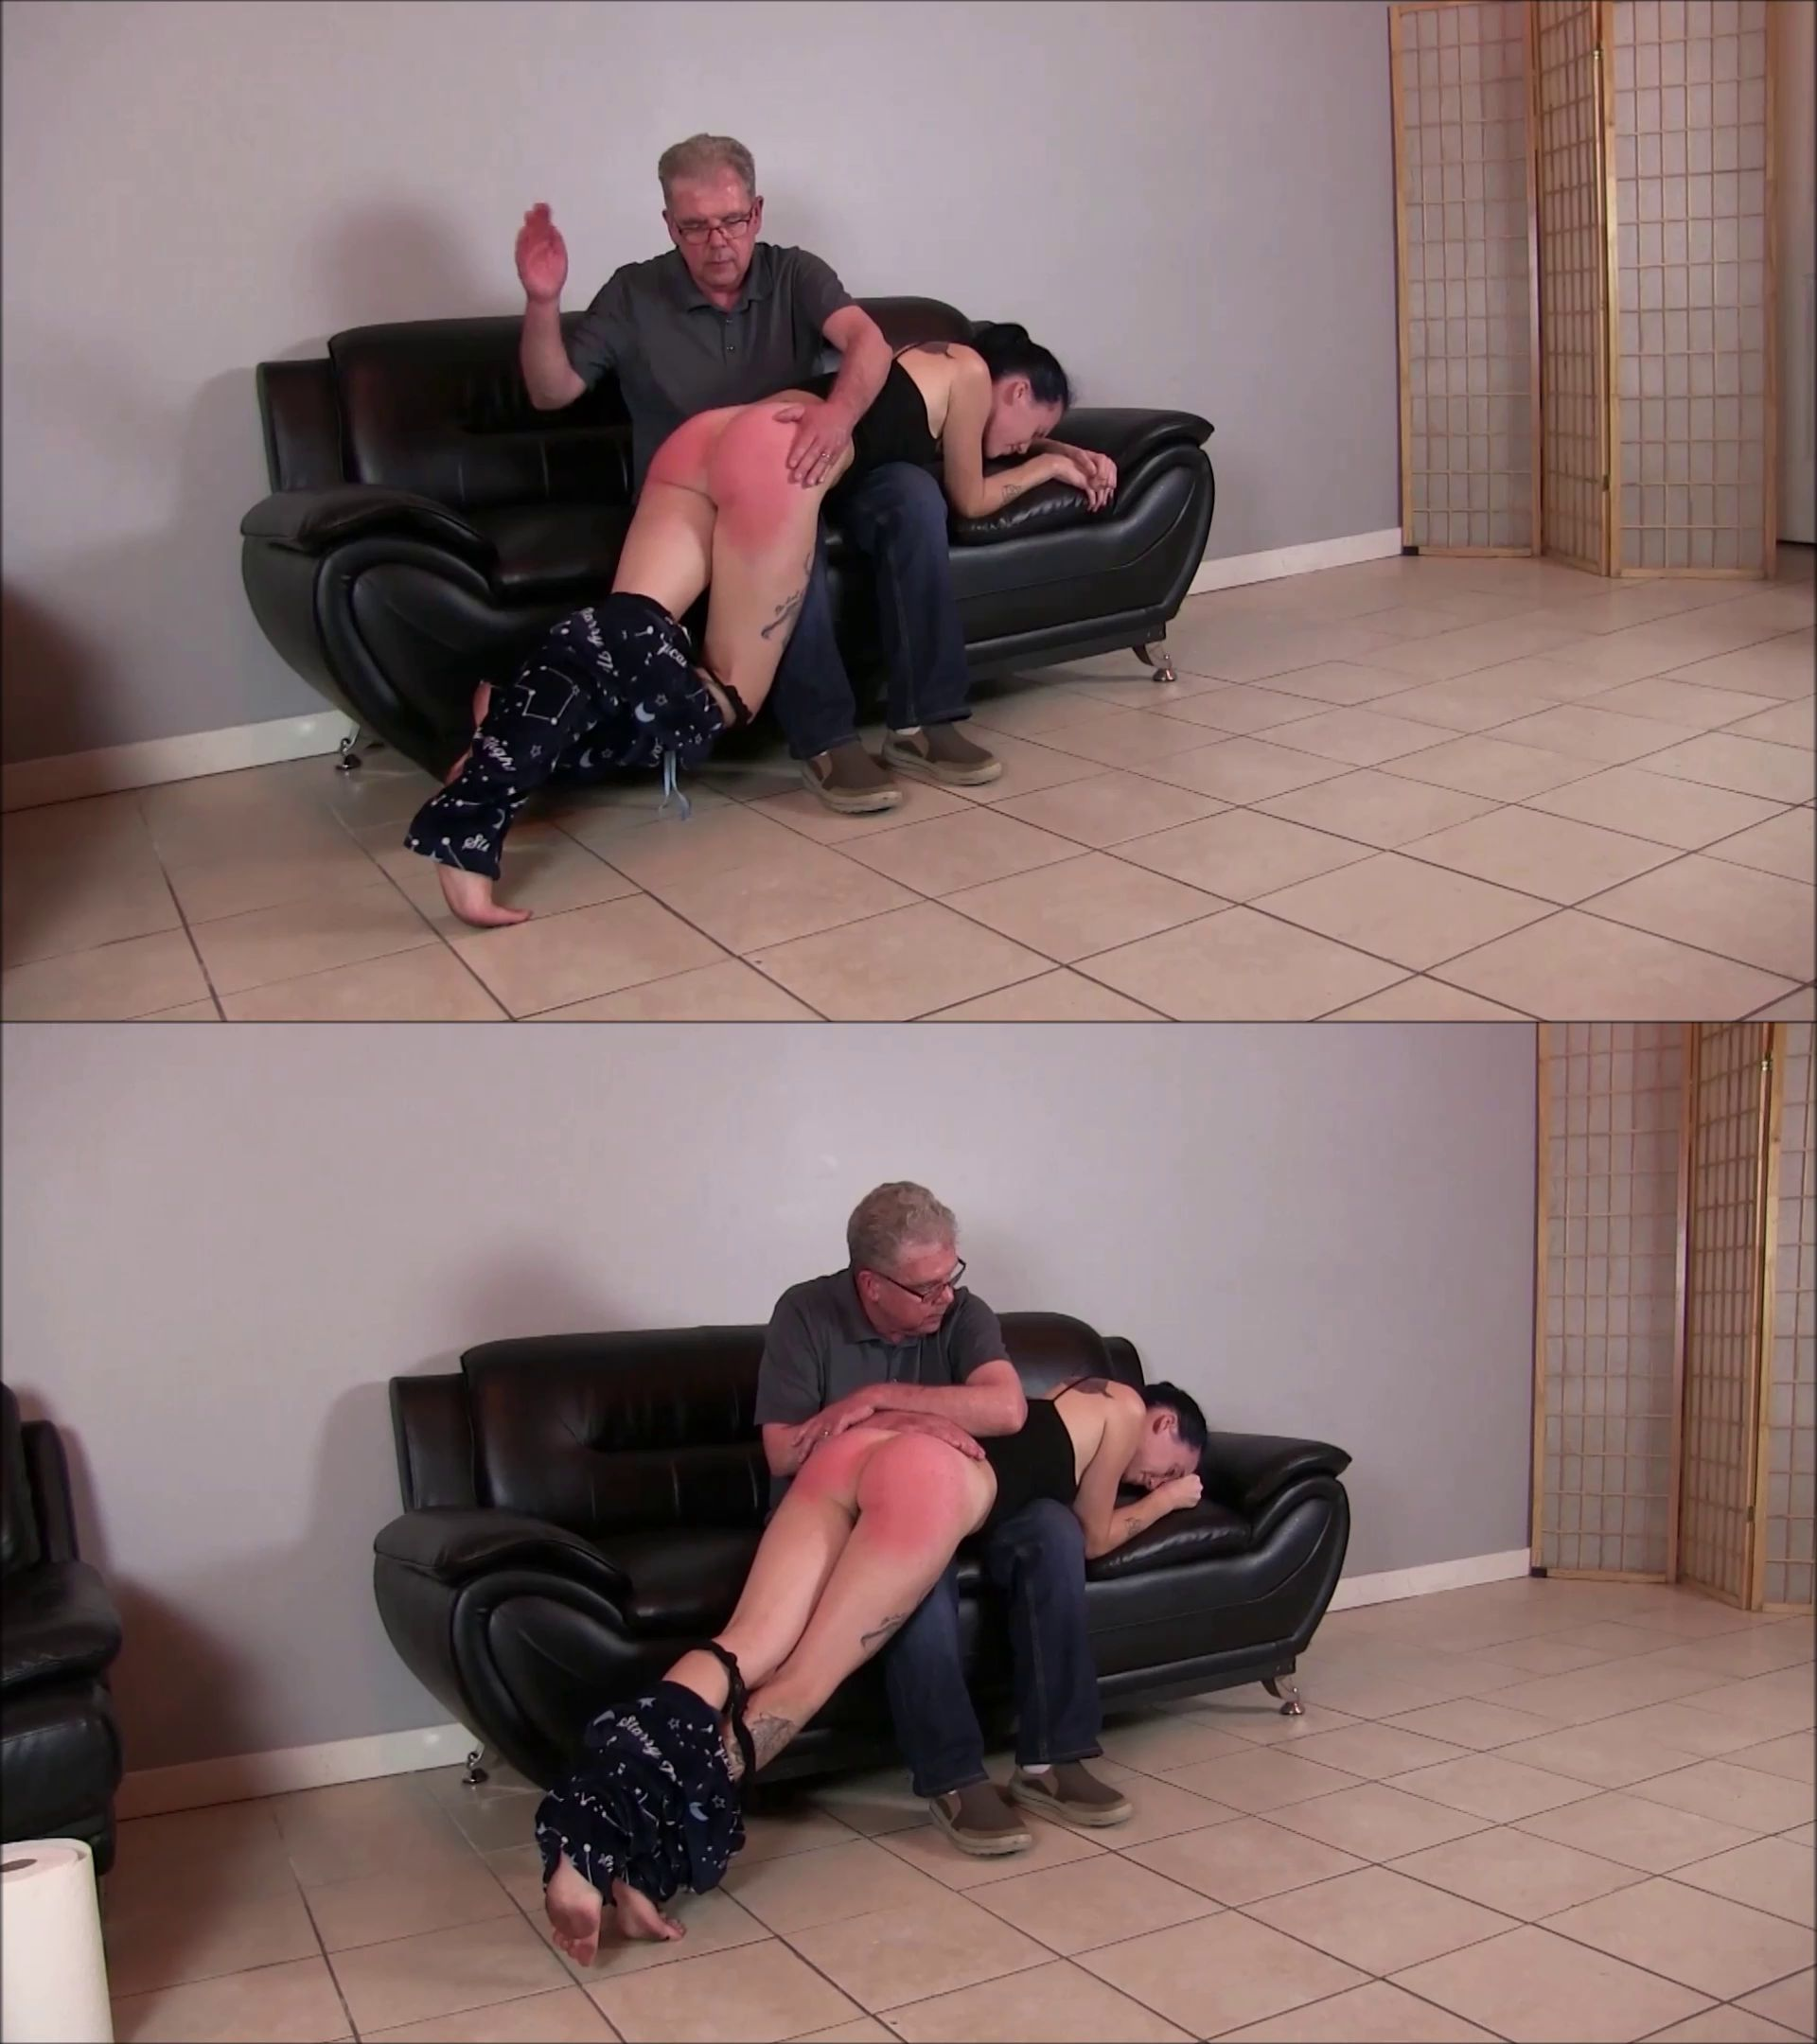 Punished Brats – MP4/Full HD – Serenity Rayne, David Pierson – Chores Not Done